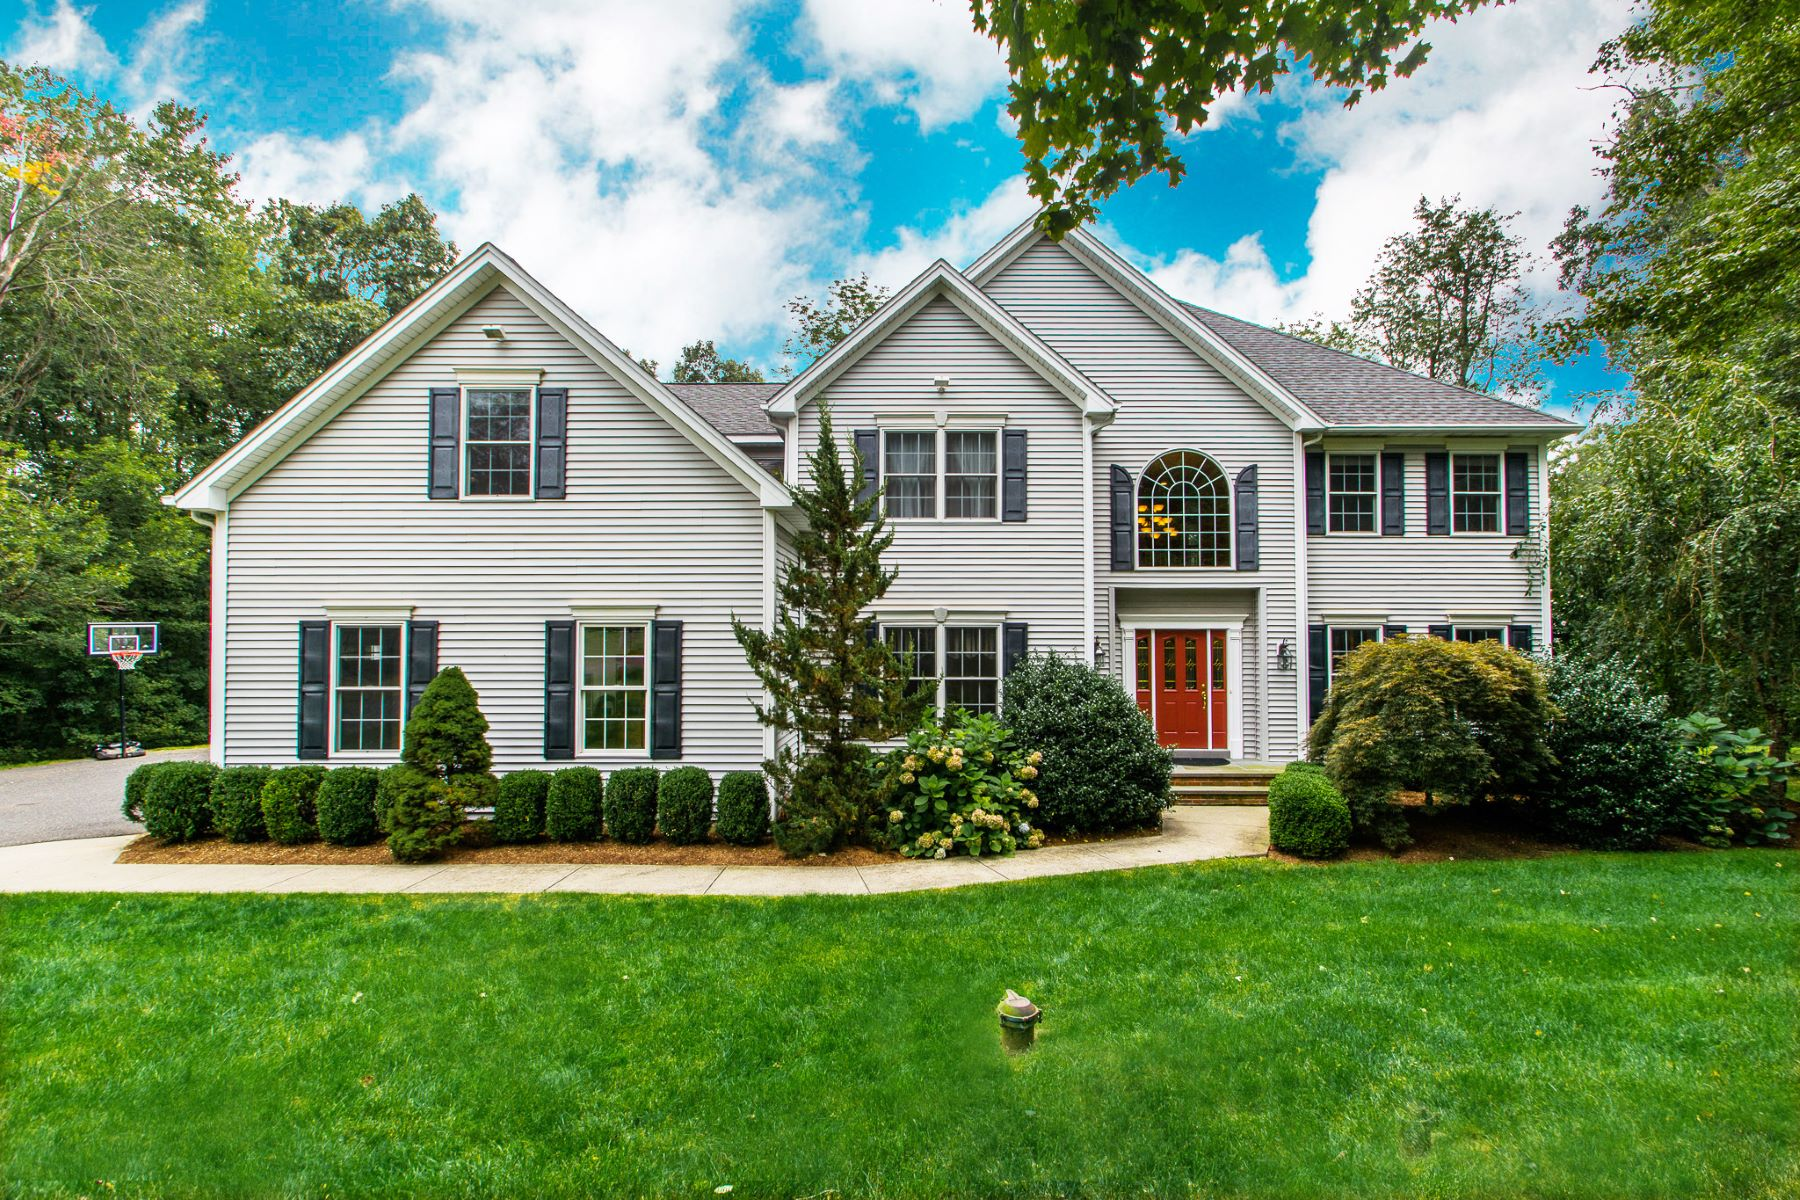 Single Family Home for Sale at Spectacular Colonial 16 Josh Lane Danbury, Connecticut 06811 United States